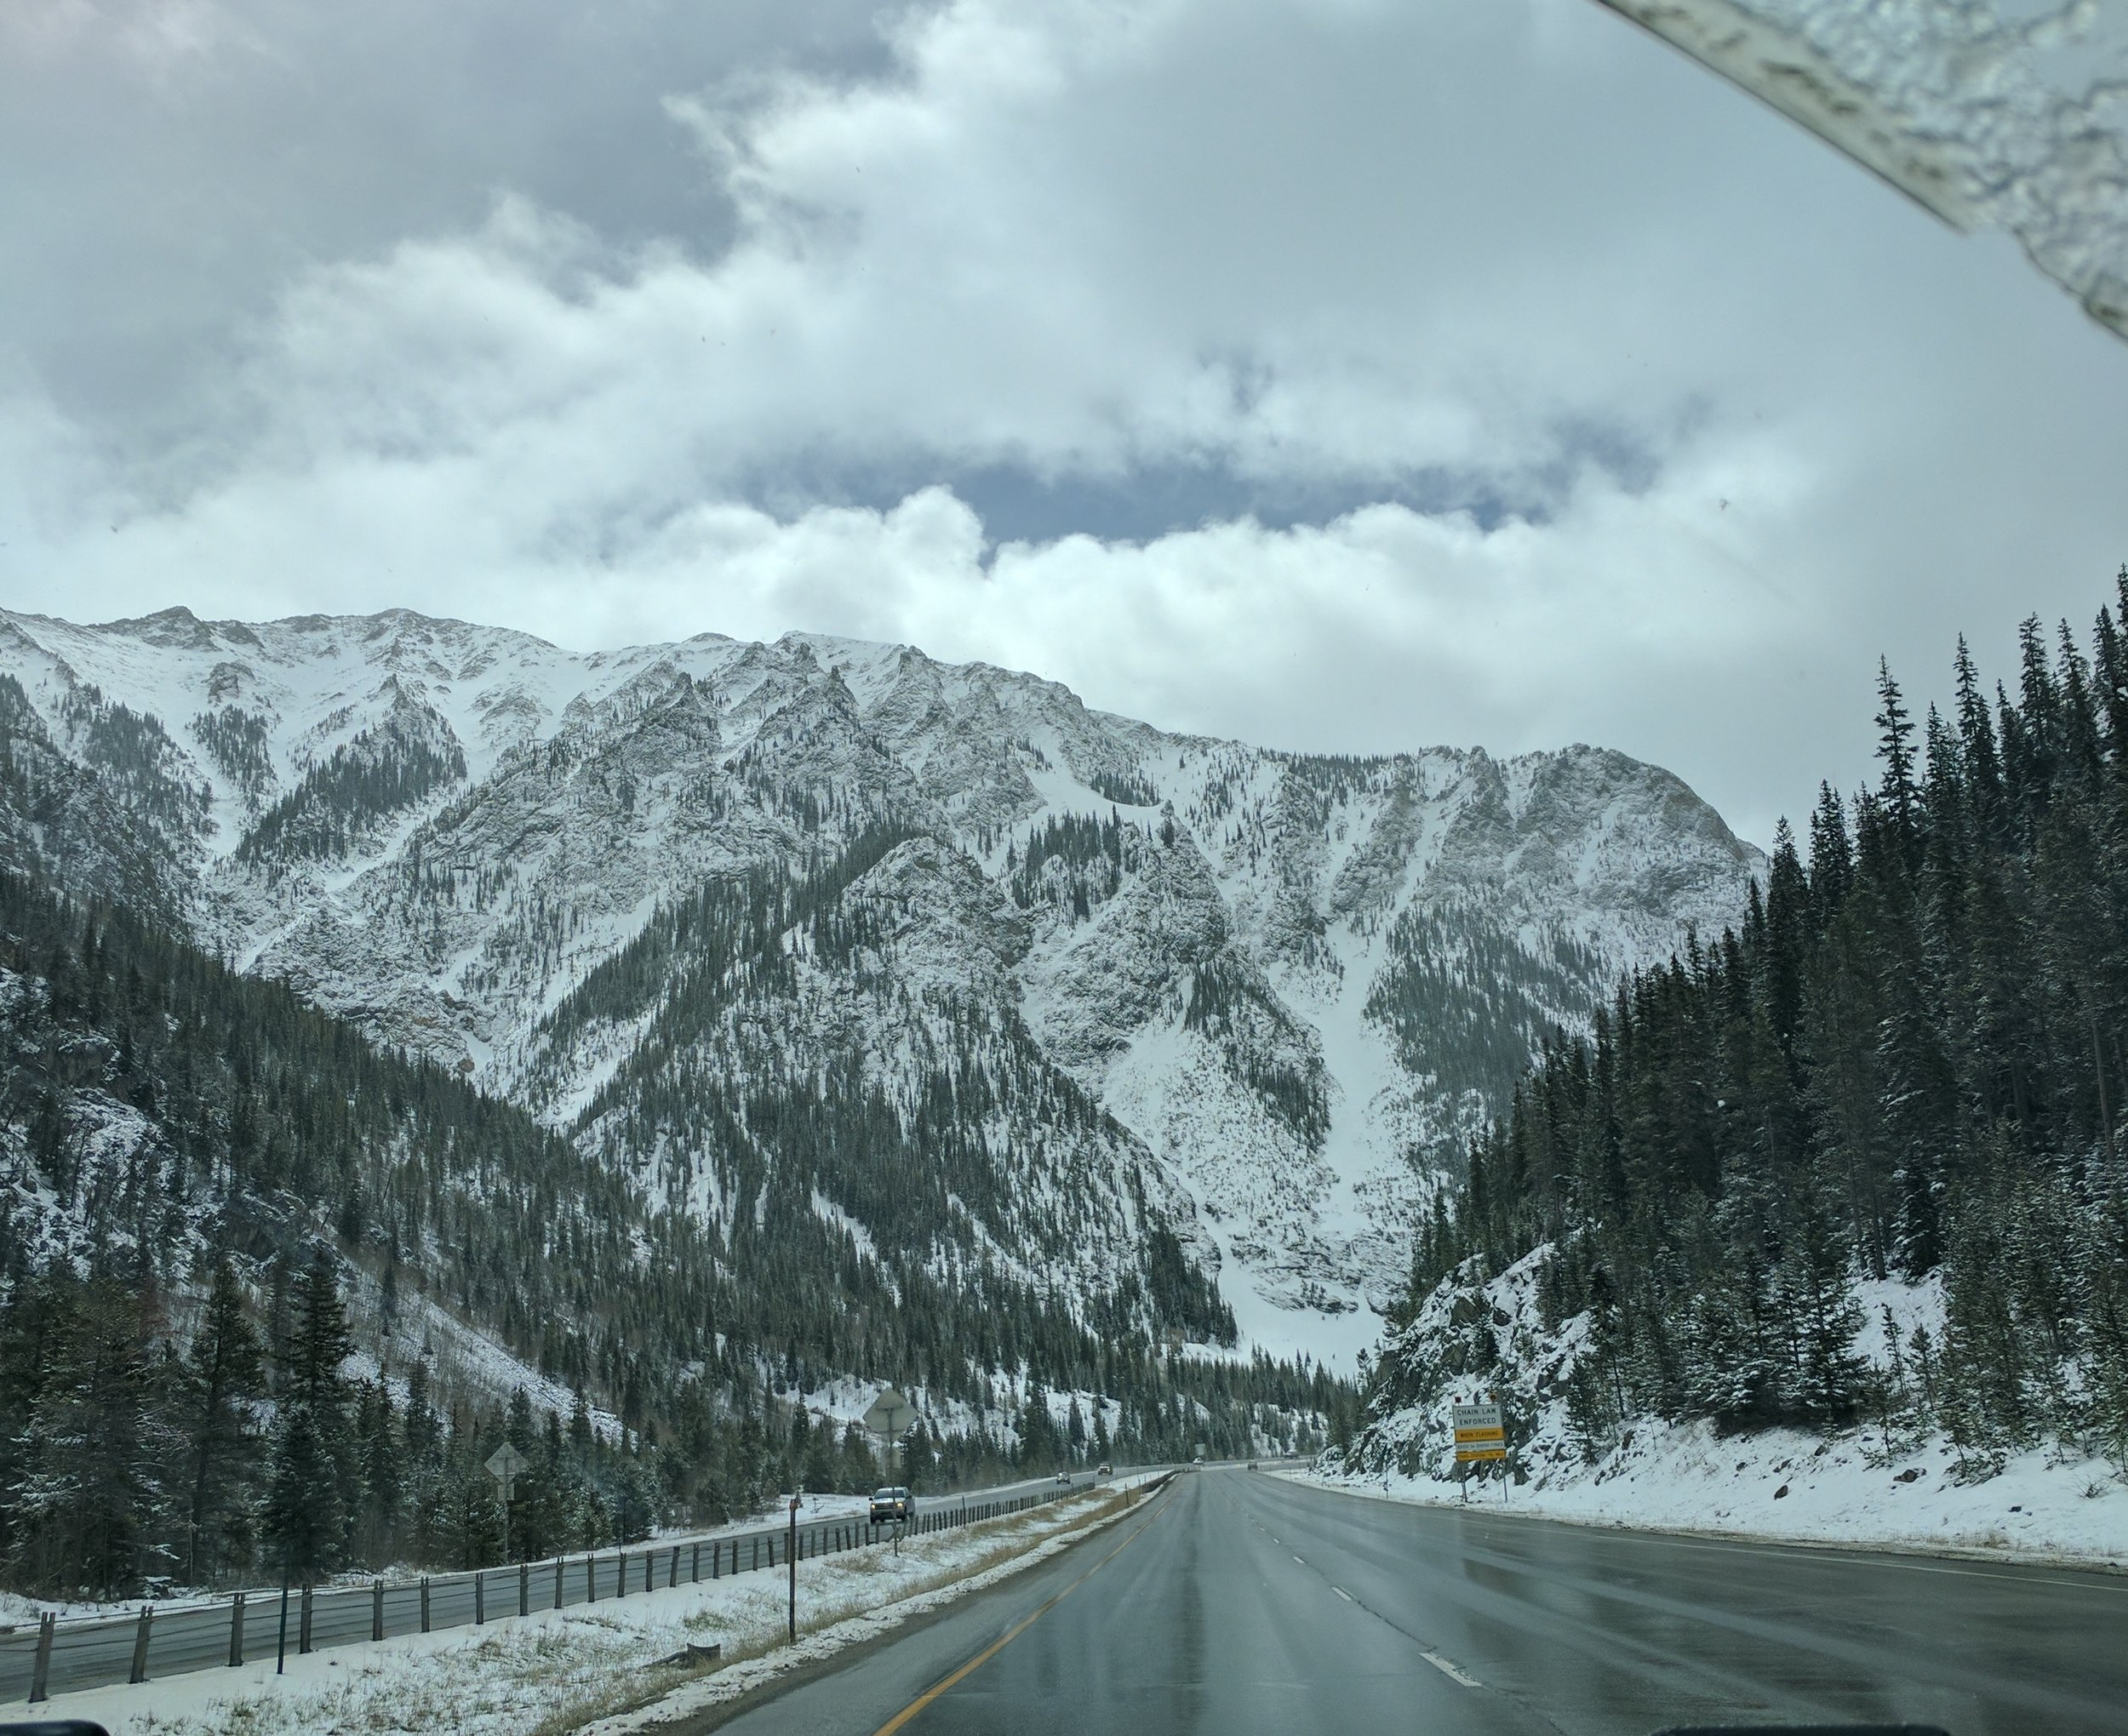 The mountain drive can be snow covered through the spring